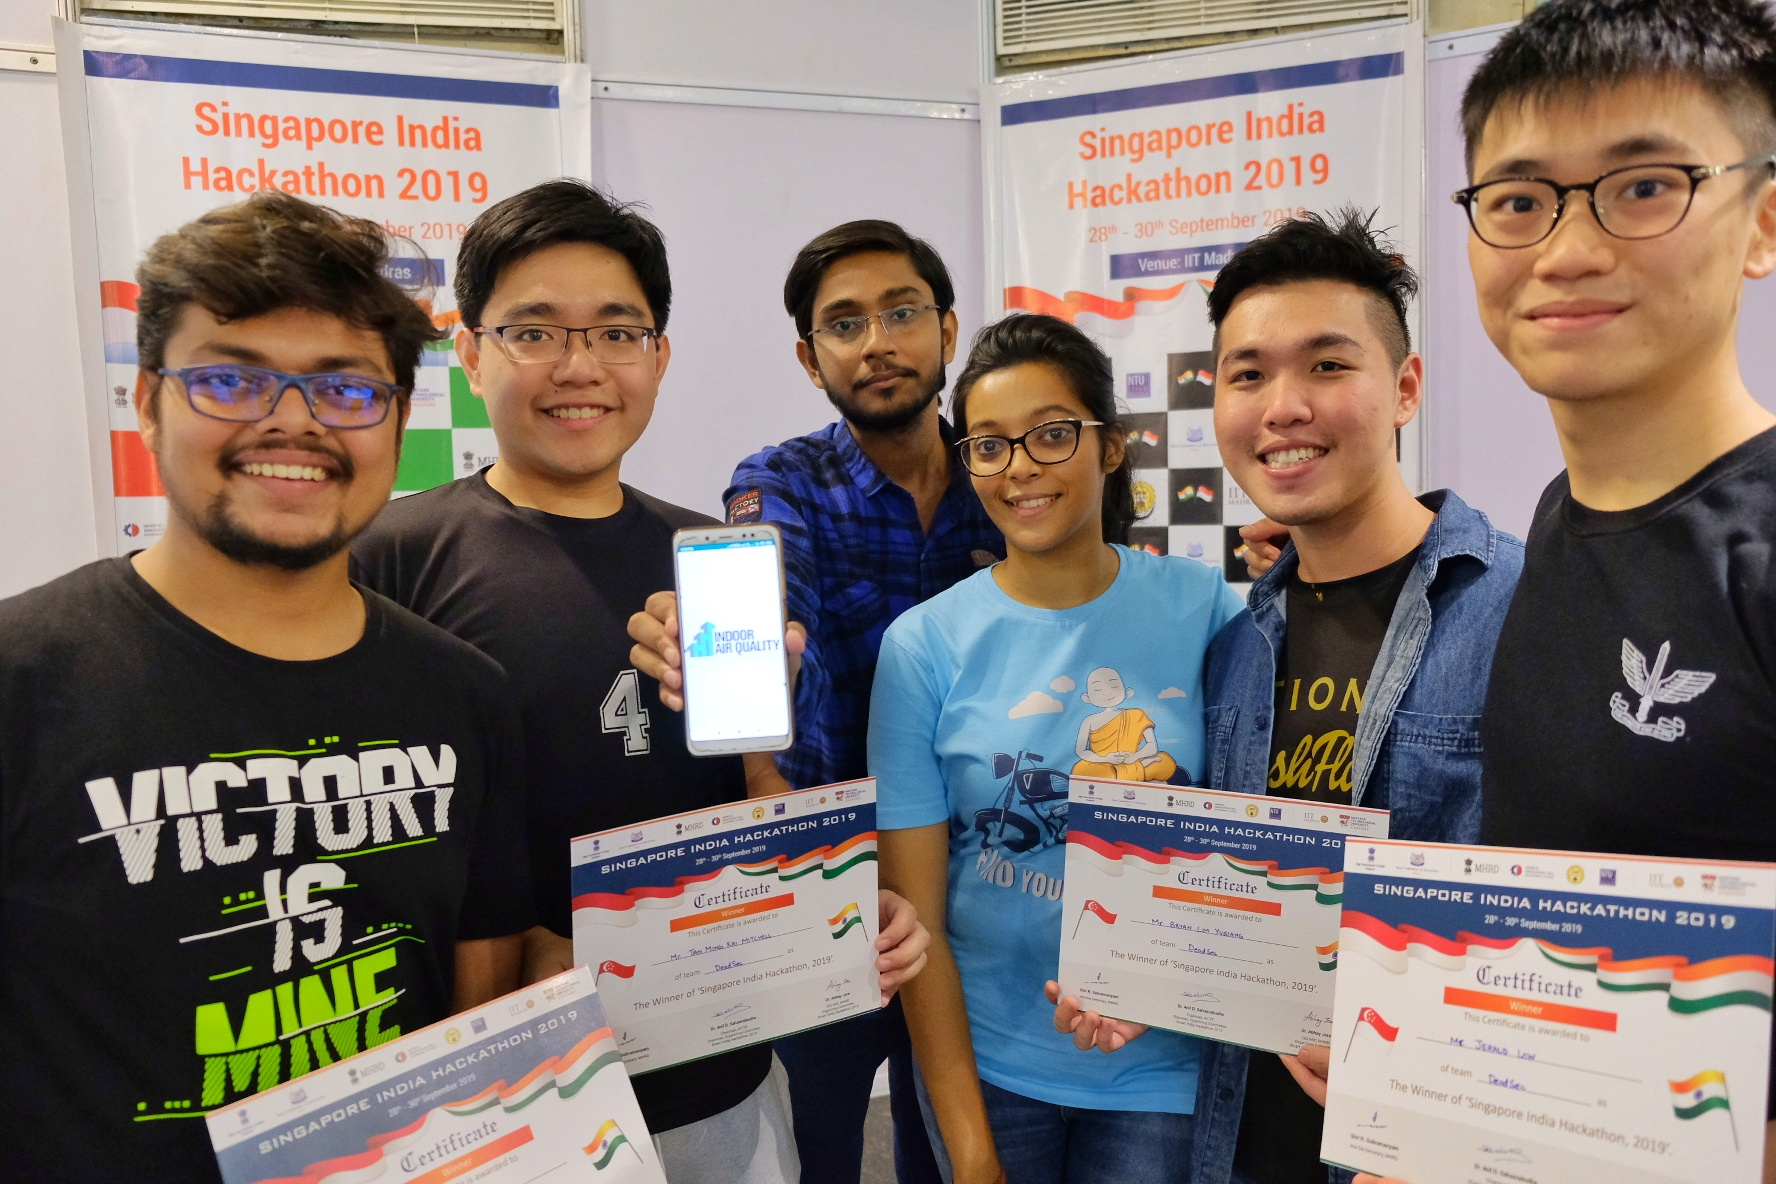 Singapore-India Hackathon 2019 First Prize Winners (from left): Baibhav Kumar, Tan Ming Kai Mitchell, Subham Divakar, Sweta Kabi, Bryan Lim Yuqiang, Jerald Low